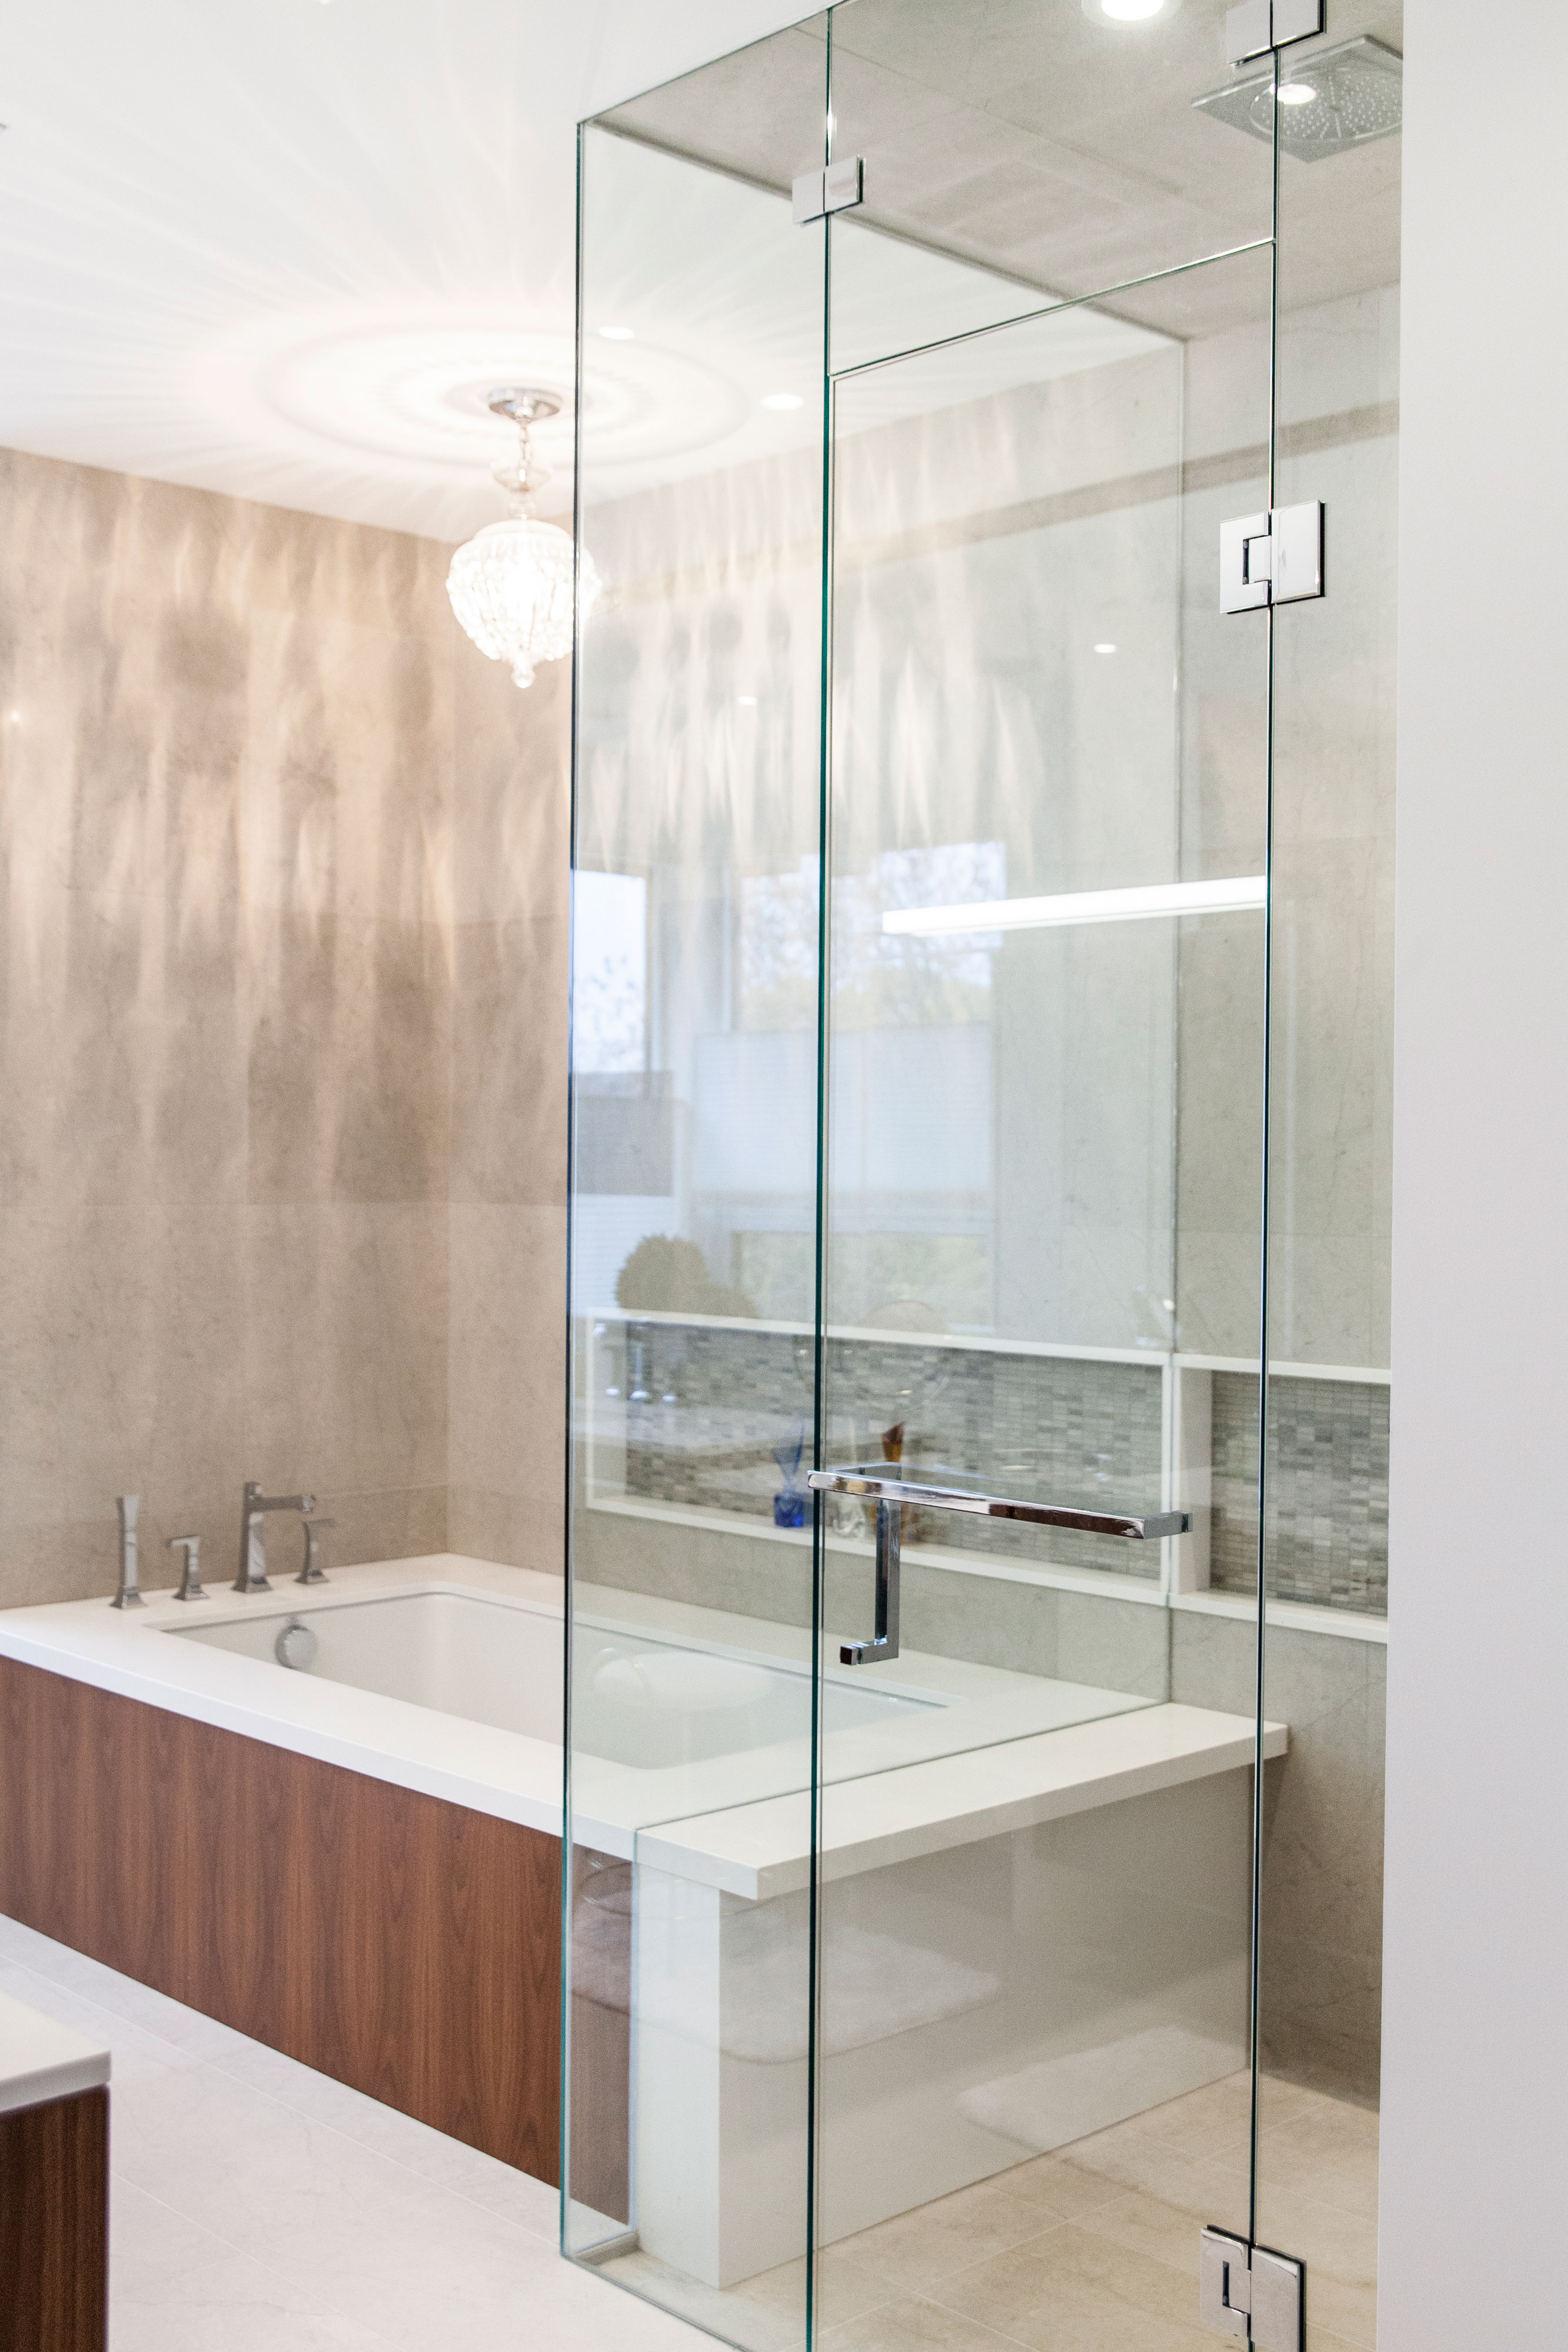 Sierra Glass Frameless Glass Shower Enclosures Interiors Inside Ideas Interiors design about Everything [magnanprojects.com]